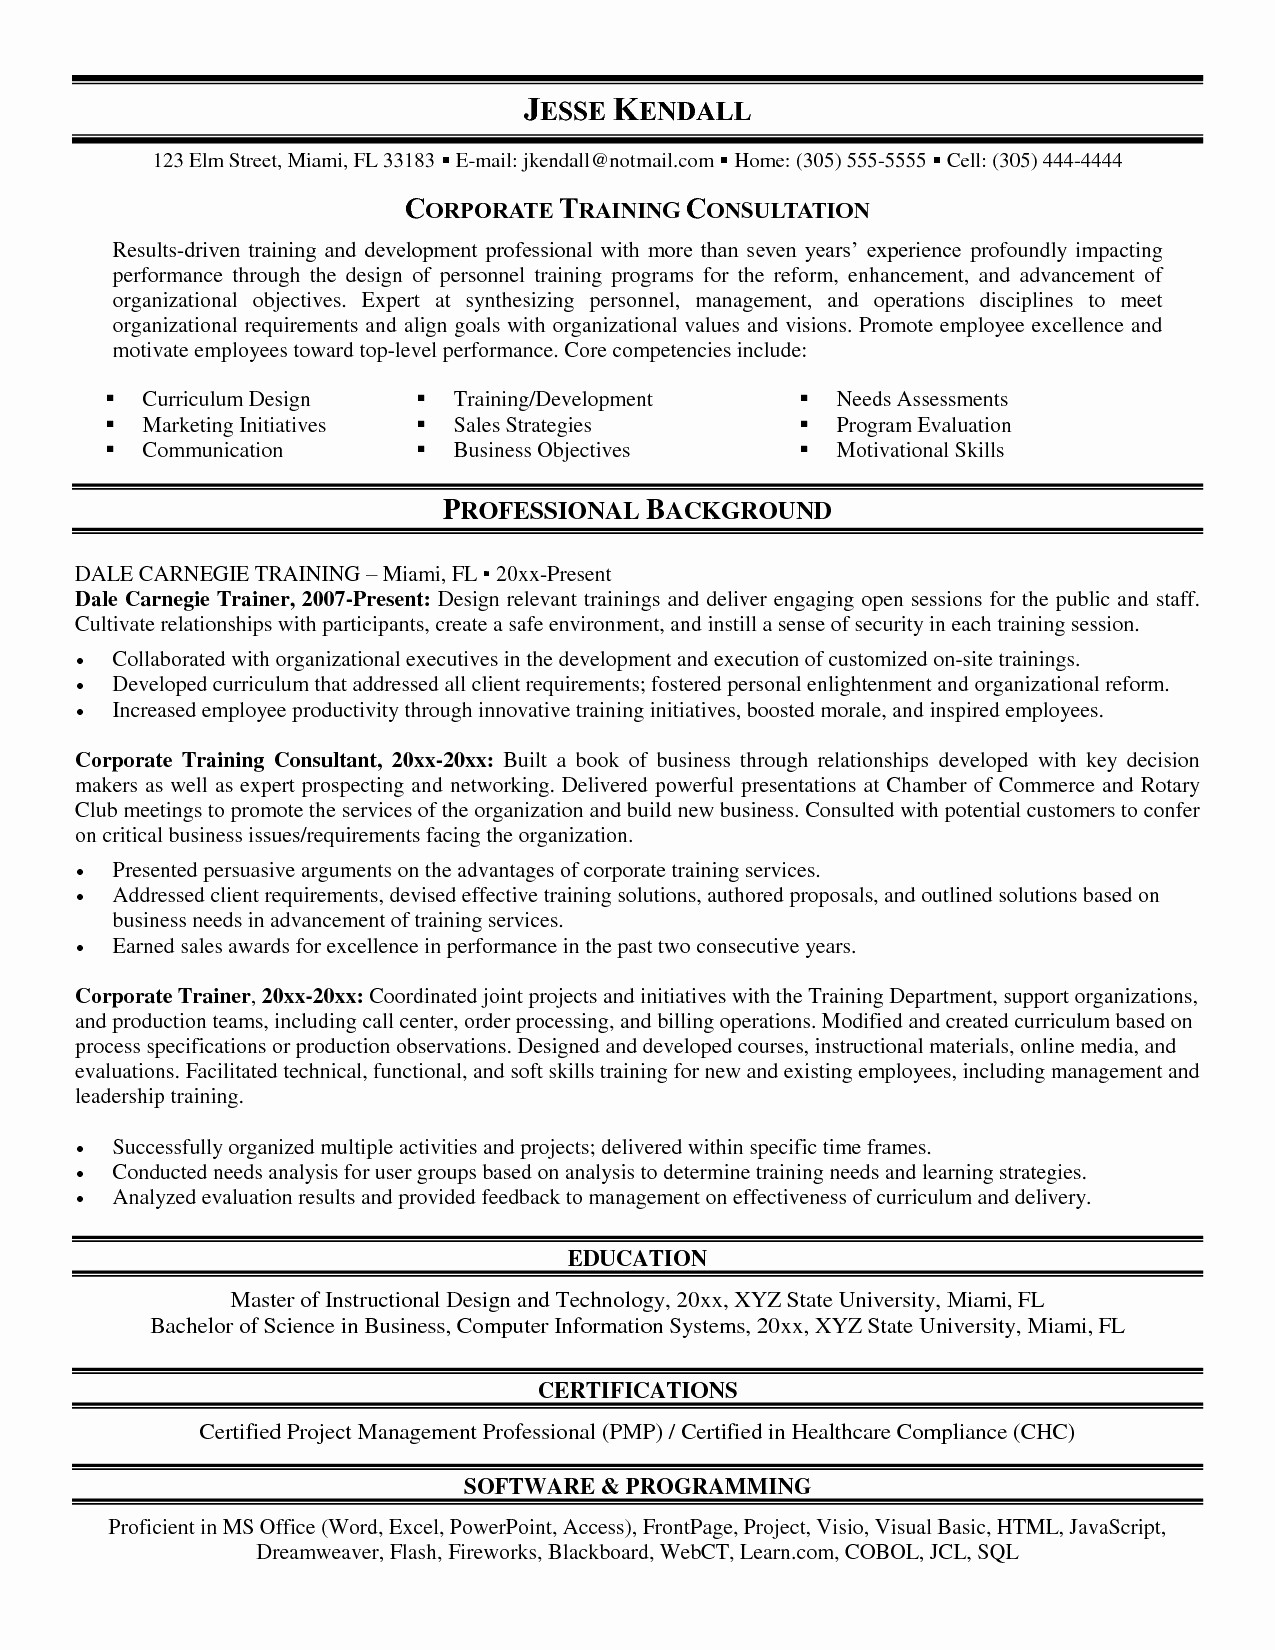 Tech Support Resume - Technical Resume Awesome Technical Resume Resume with Technical